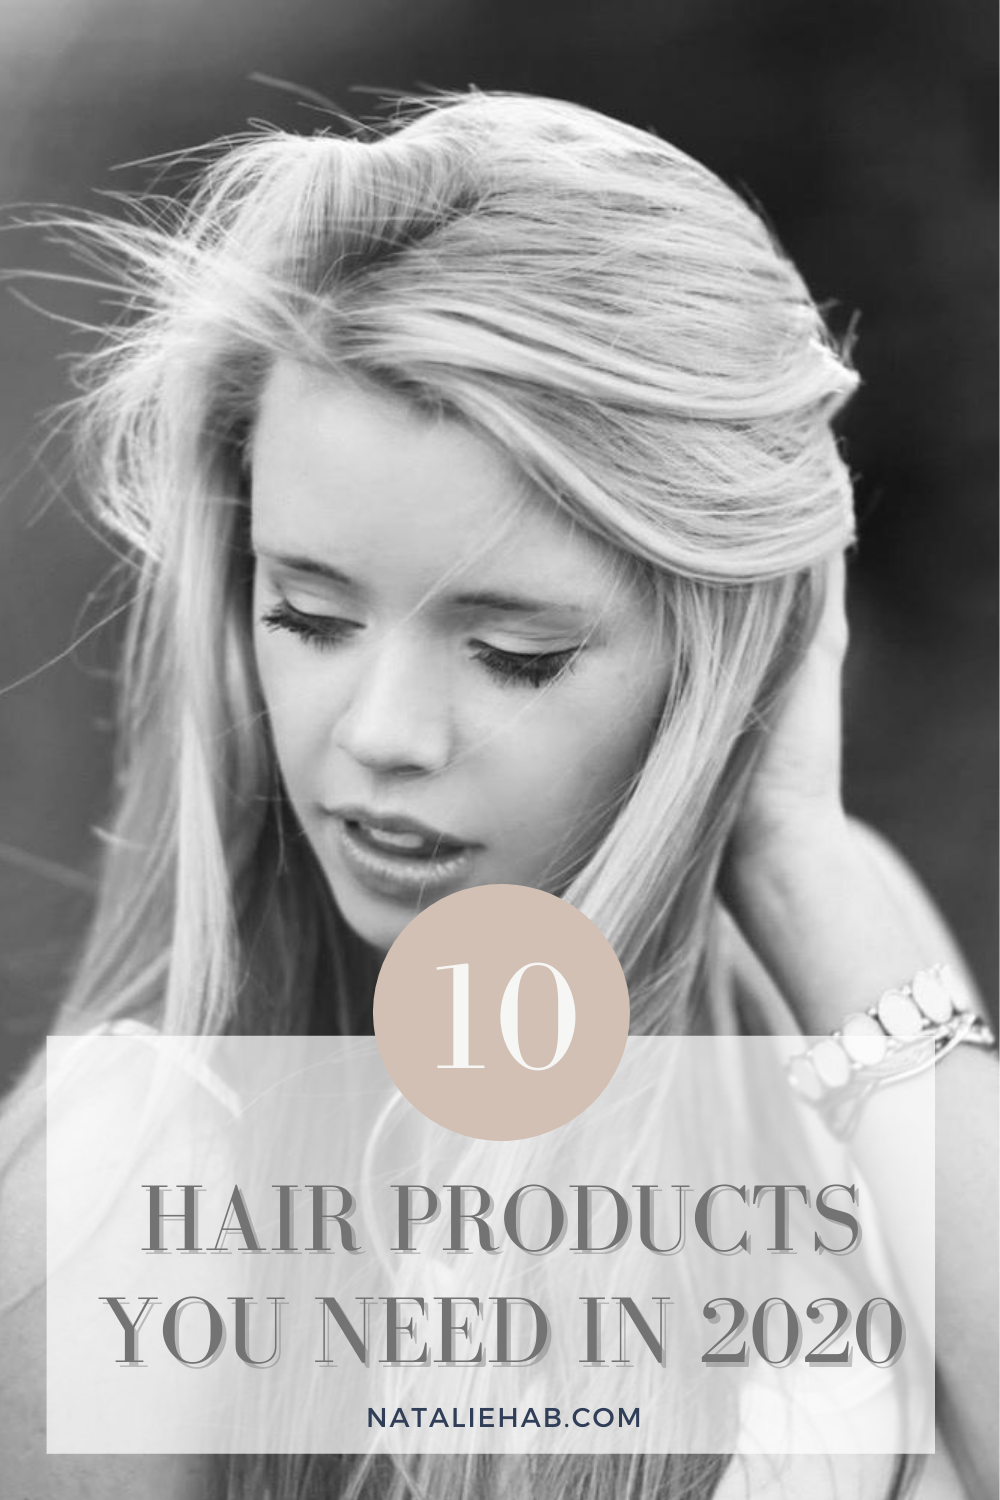 10 Haircare Essentials You Need in 2020 - NatalieHab.com: Are you in the market for some new hair care products? Check out these 10 haircare essentials that I couldn't live without!